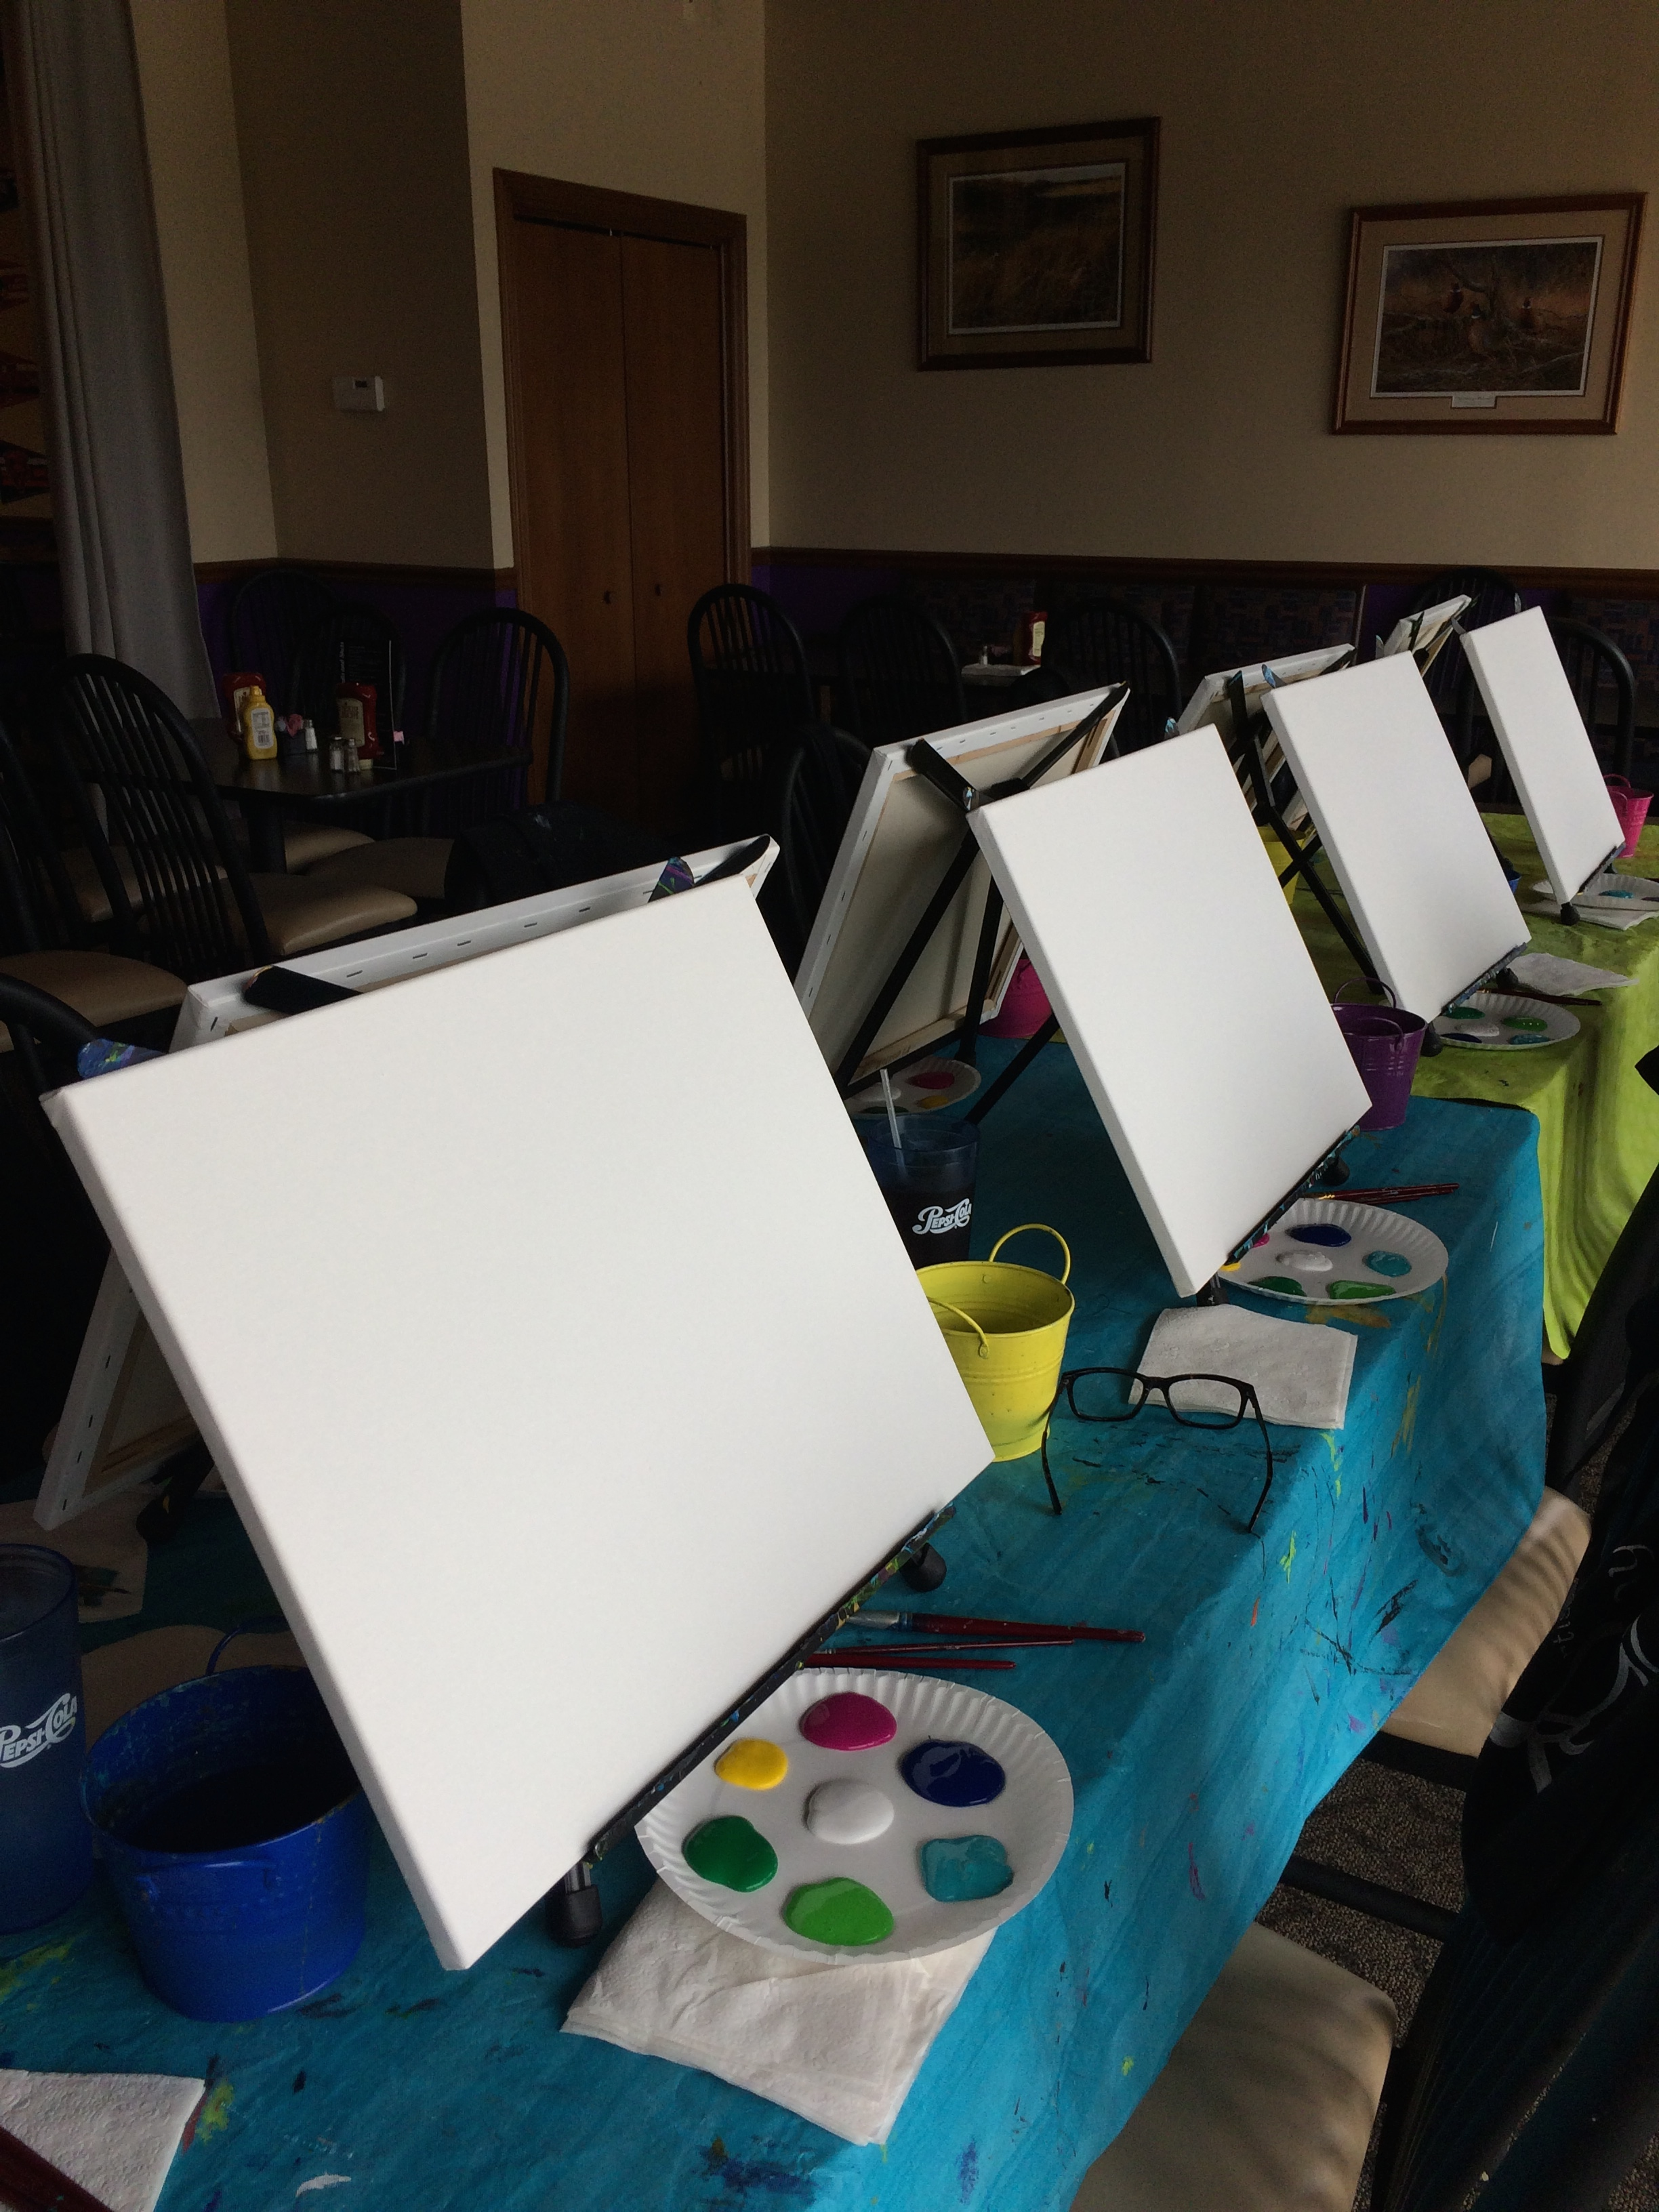 We bring the art supplies, table cloths, easels, canvas and aprons.